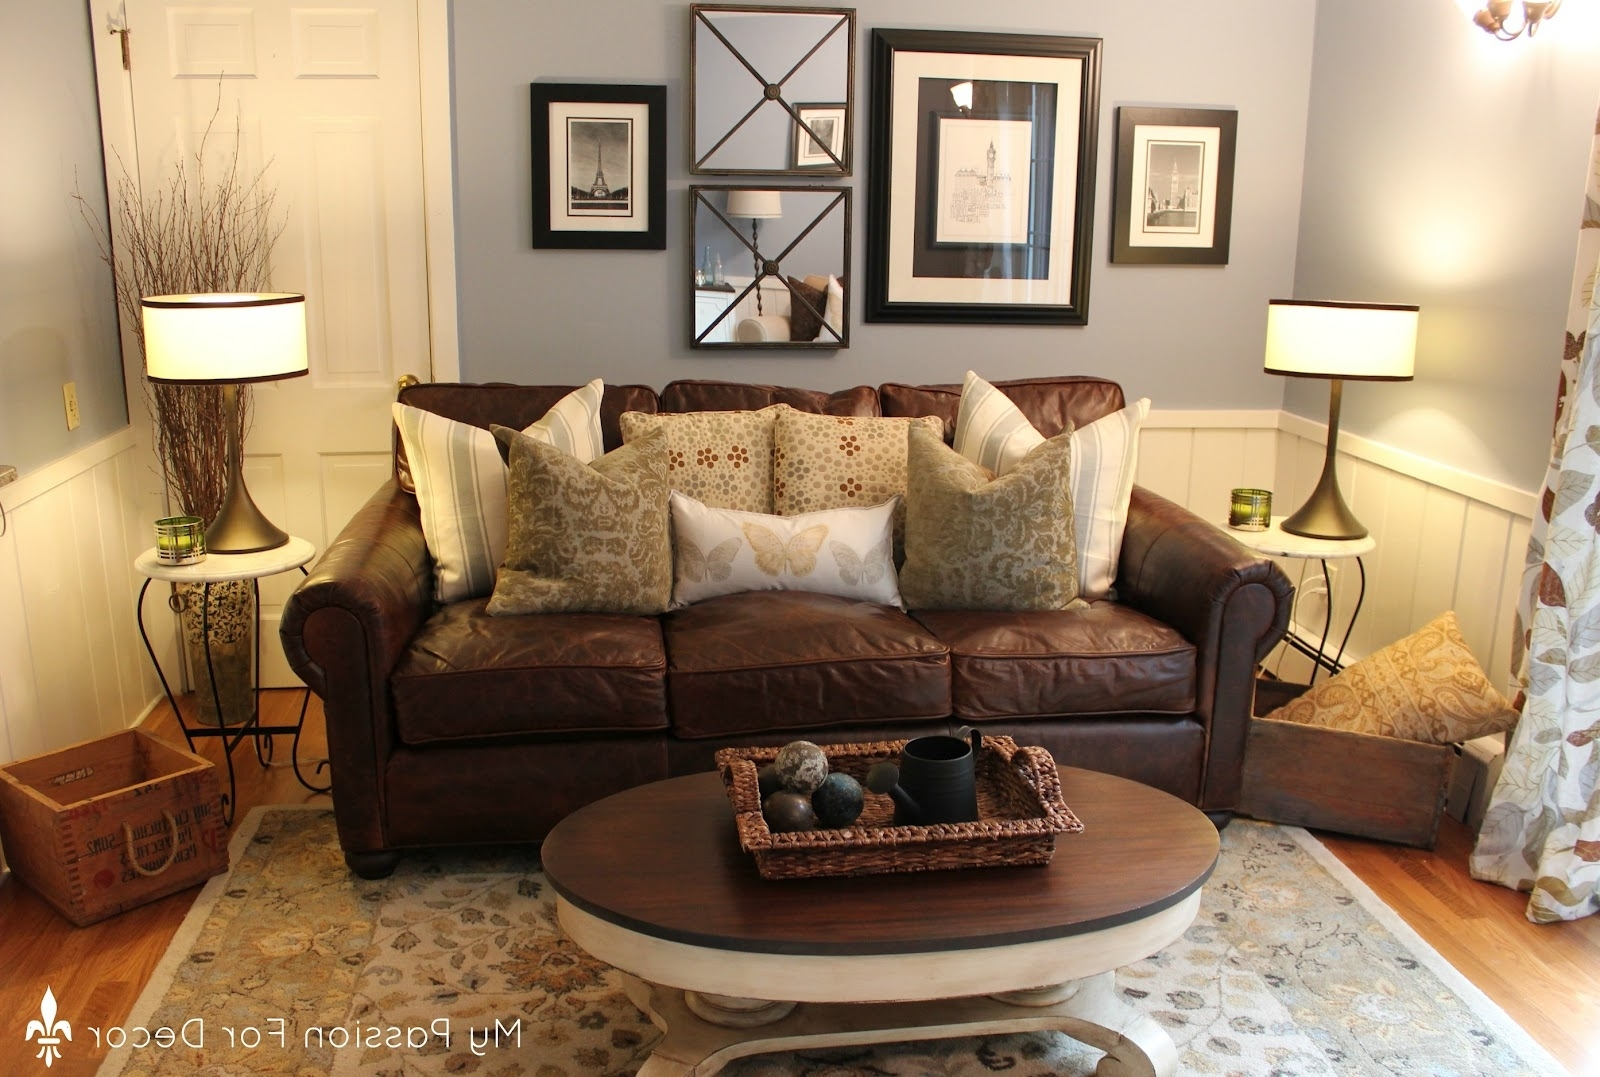 Restoration Hardware Sectional Sofas Within 2018 My Passion For Decor: Our New Addition! (View 12 of 15)